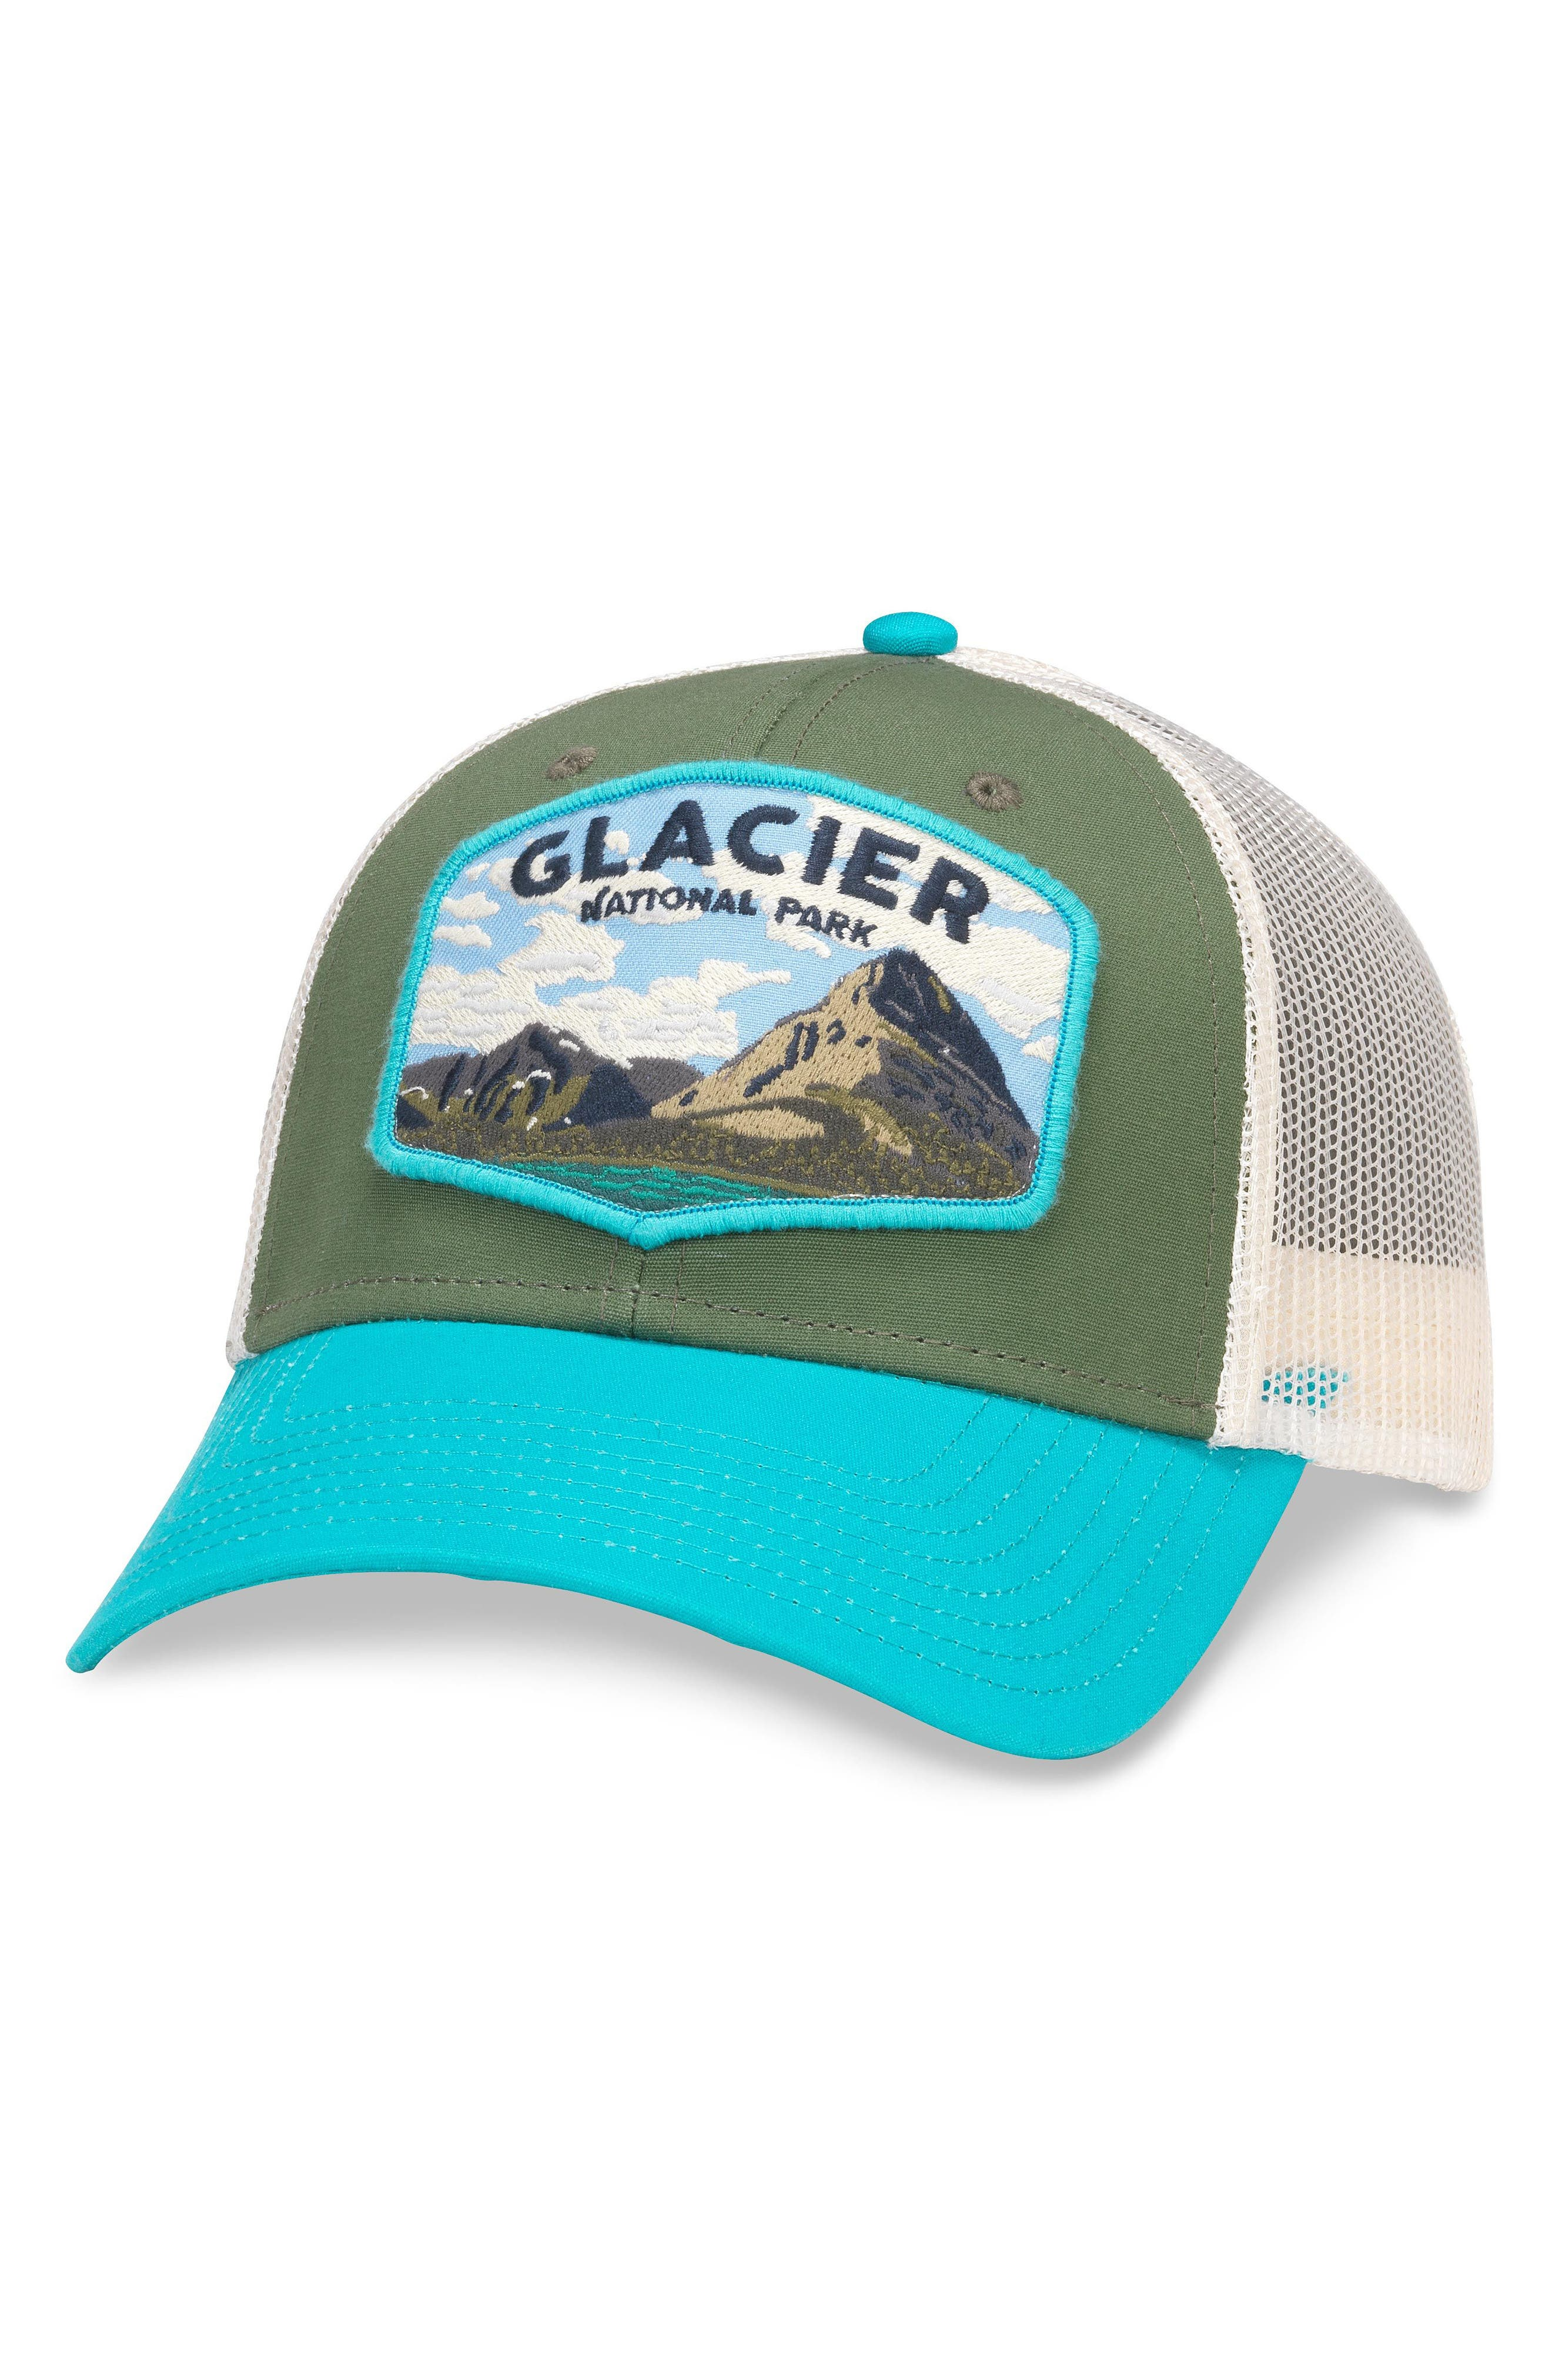 Barley 2 National Park Trucker Cap,                         Main,                         color, 900